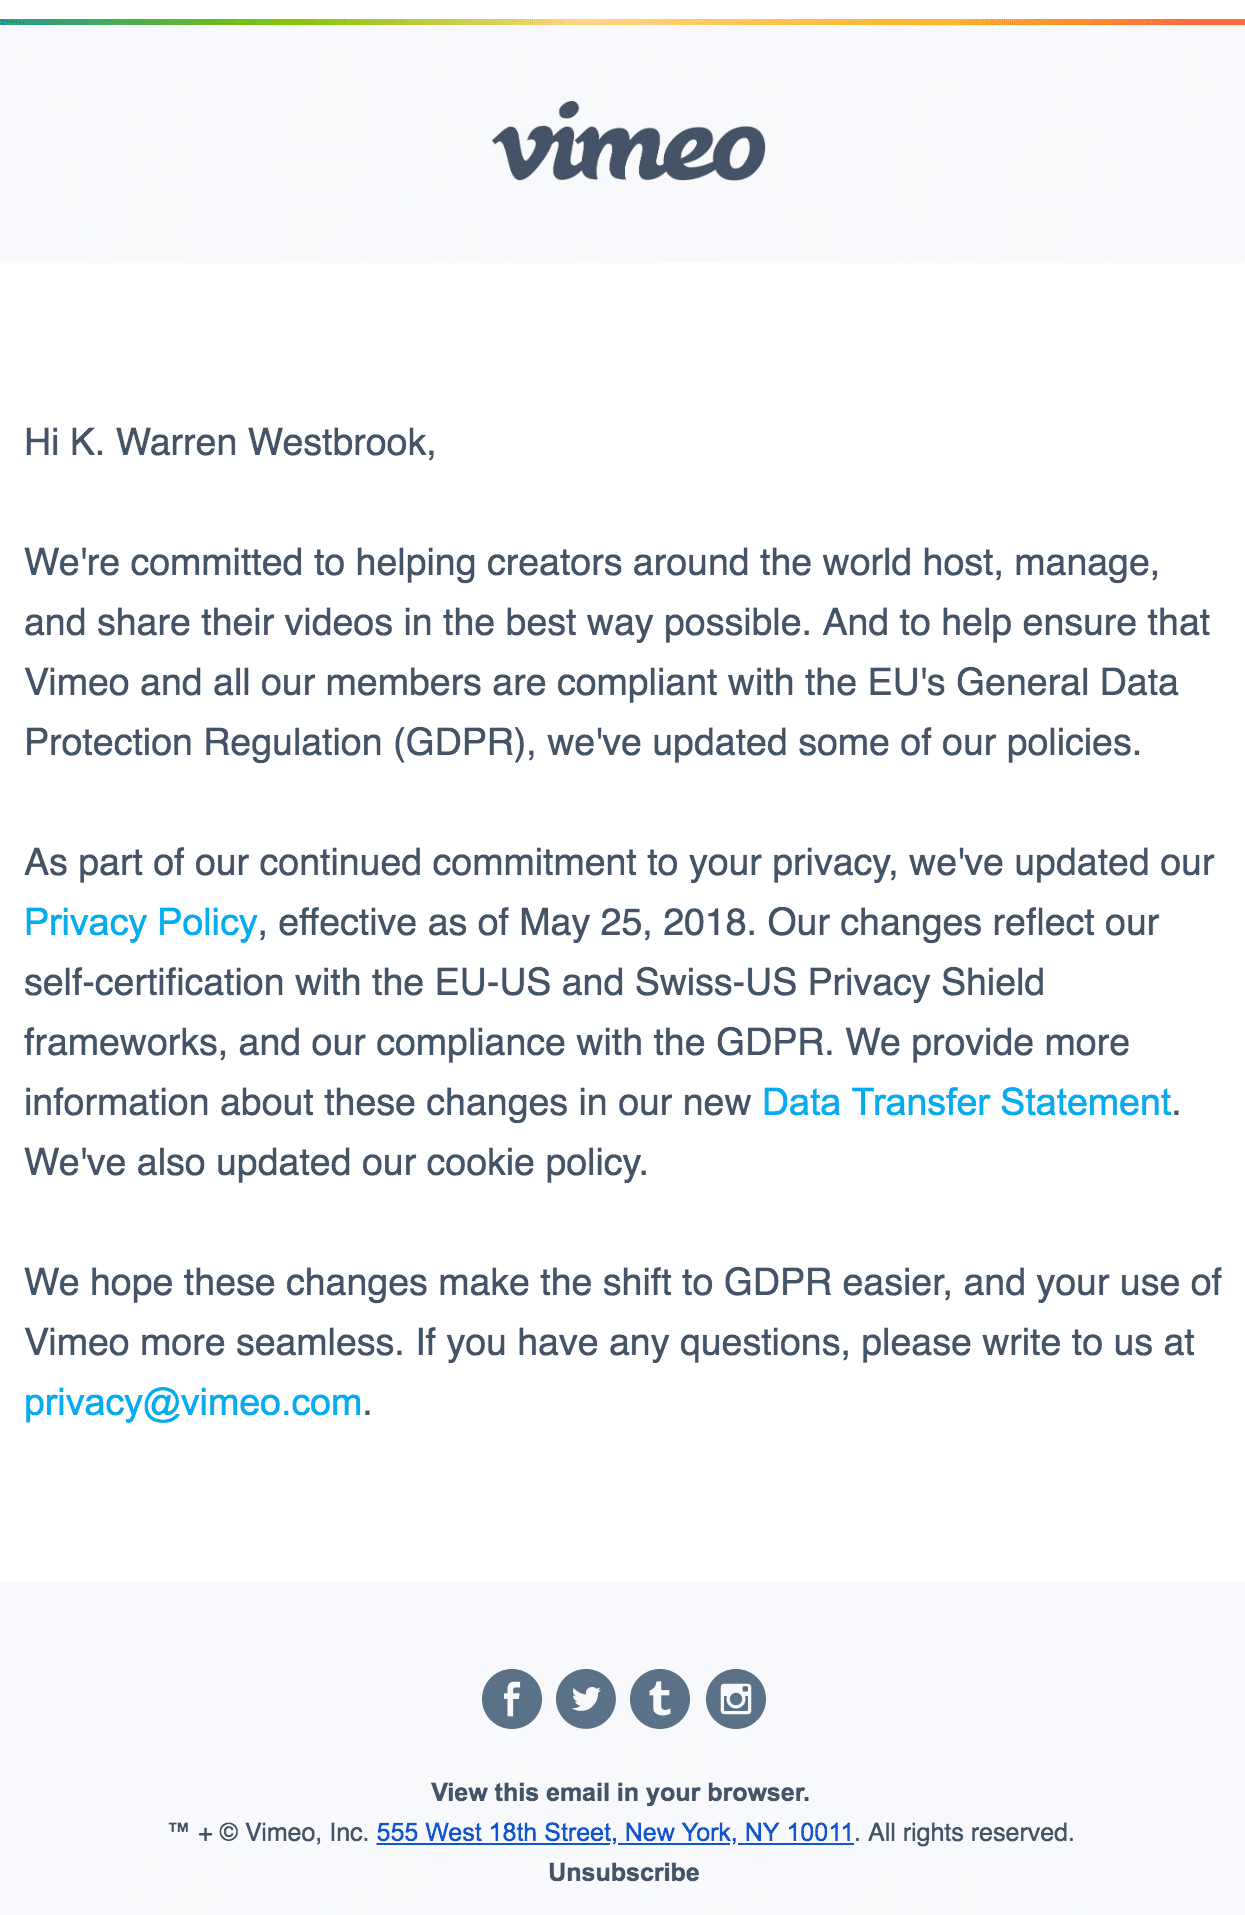 Vimeo TOU email example: Great Examples of Updated Privacy Statement Emails